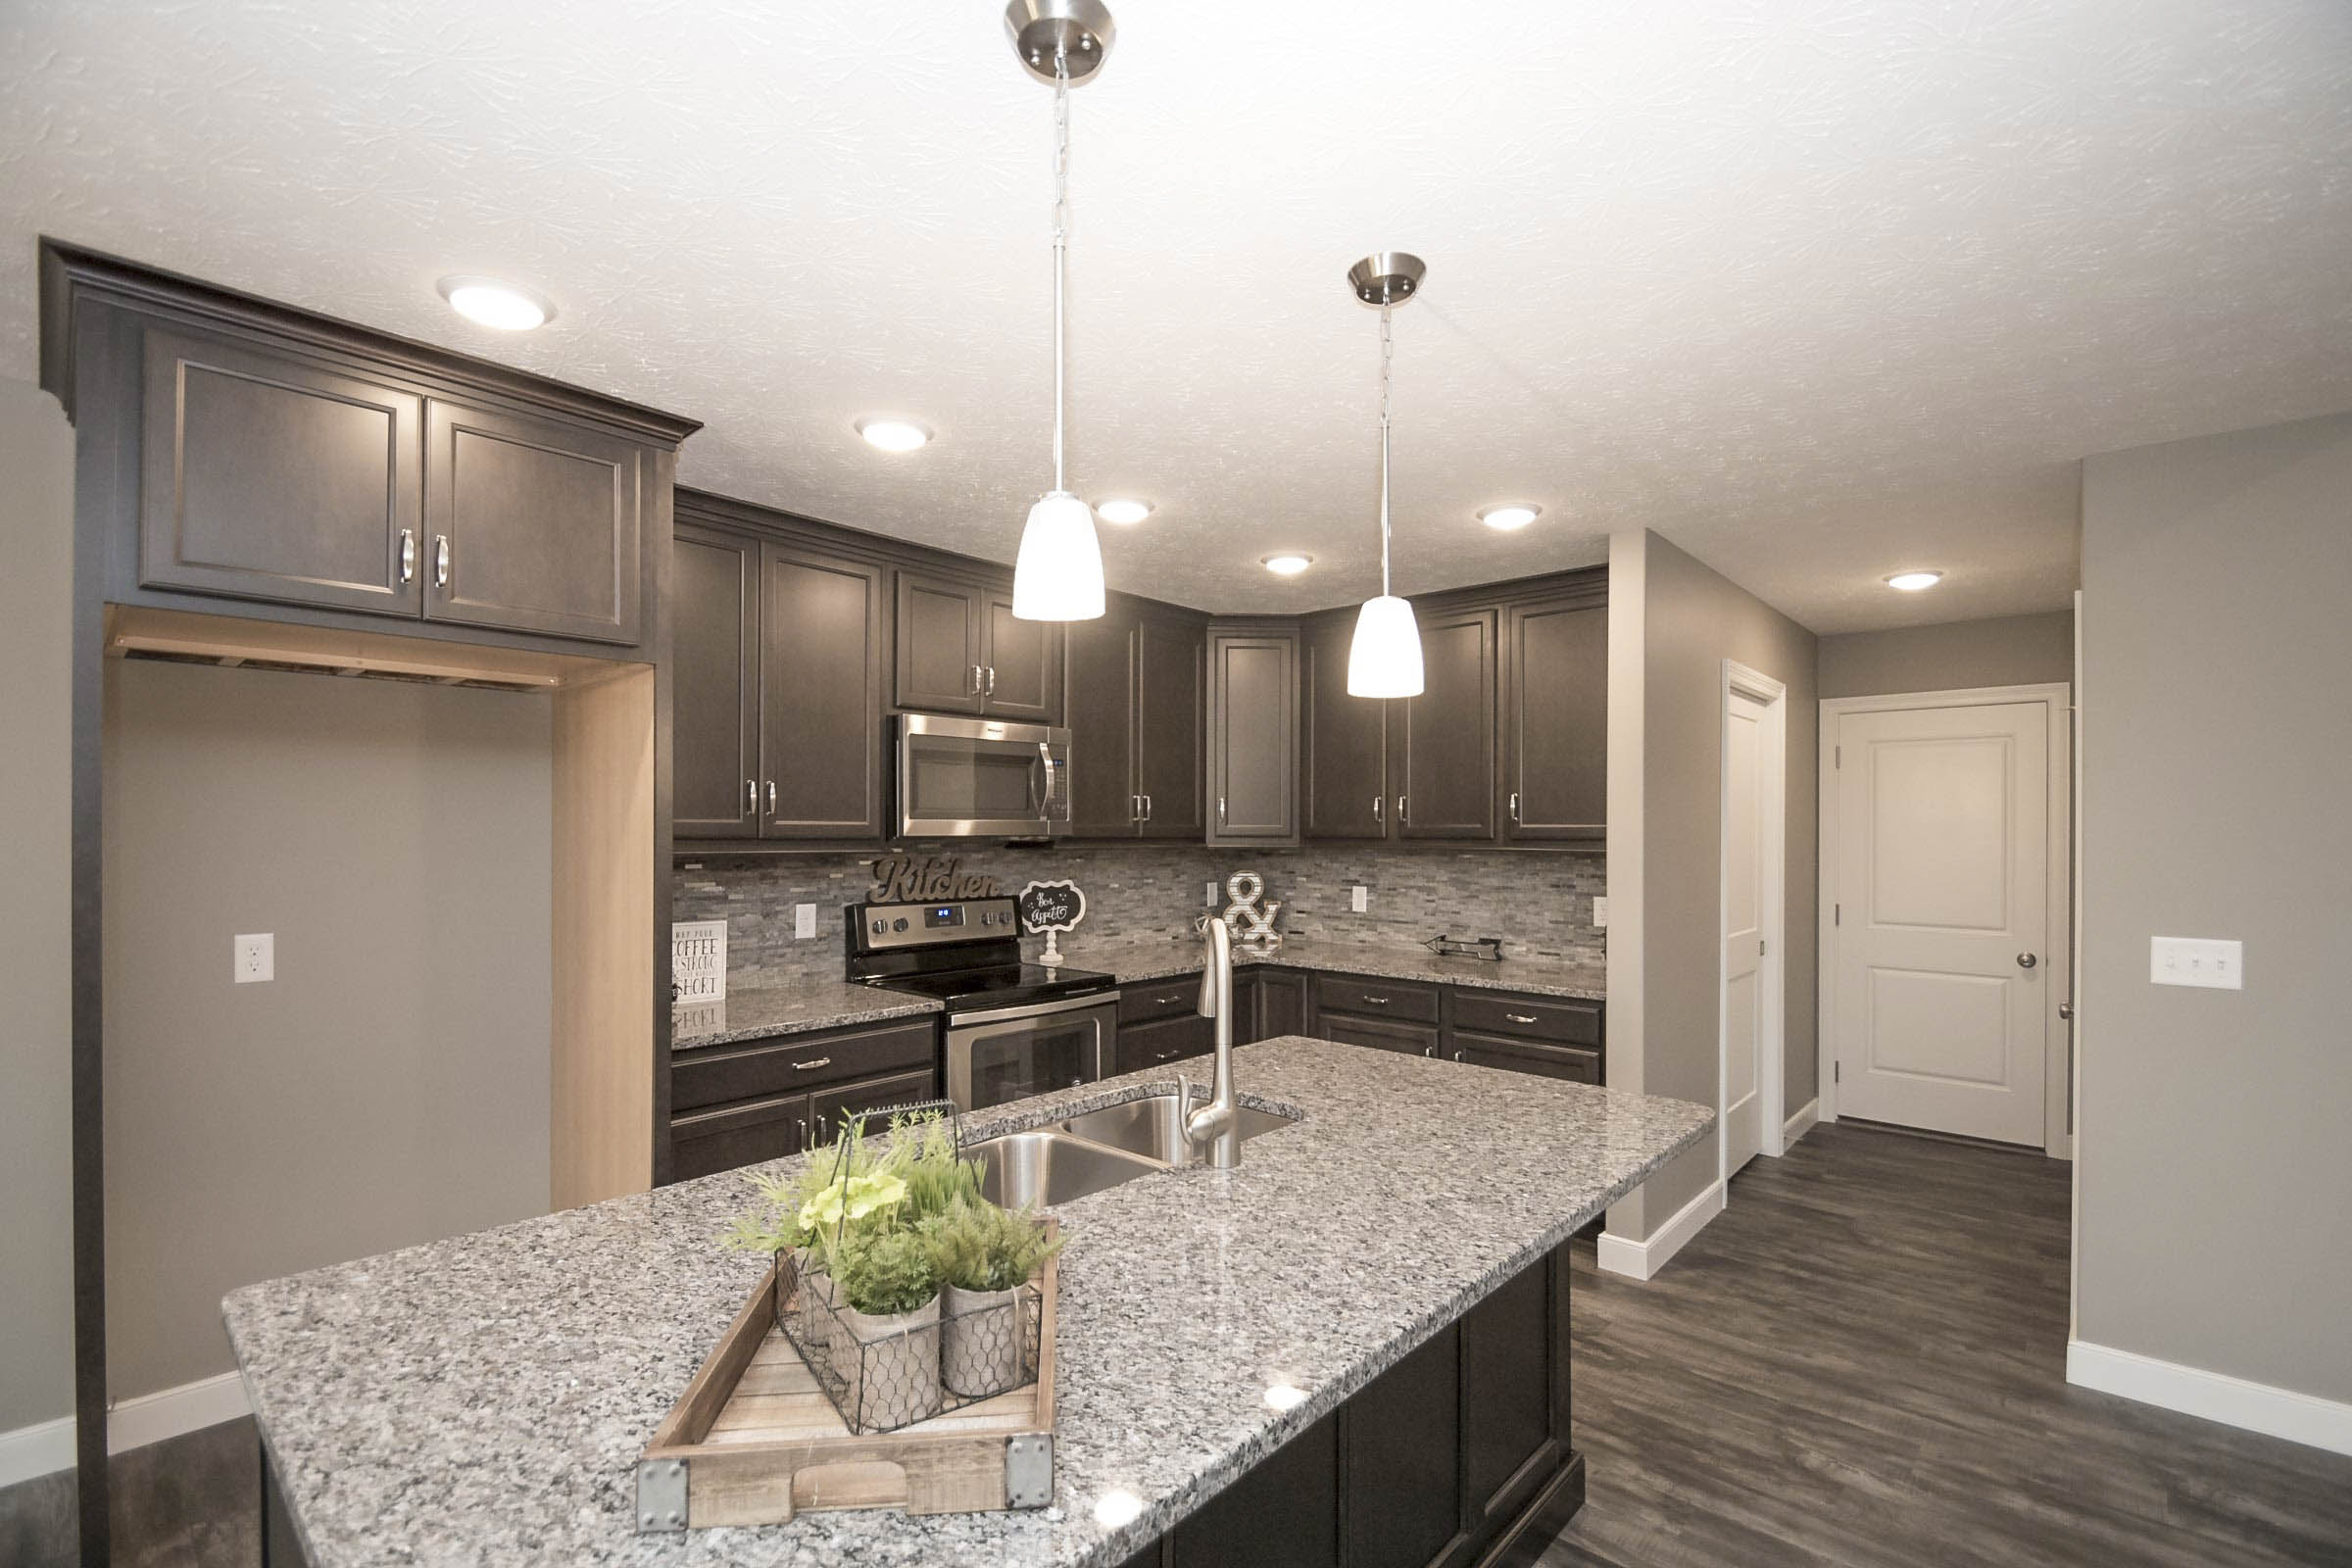 Granite Countertops, Full Overlay Cabinets With Soft Close Doors And  Drawers. Kitchen   Granite Countertops, Full Overlay Cabinets With Soft  Close Doors And ...